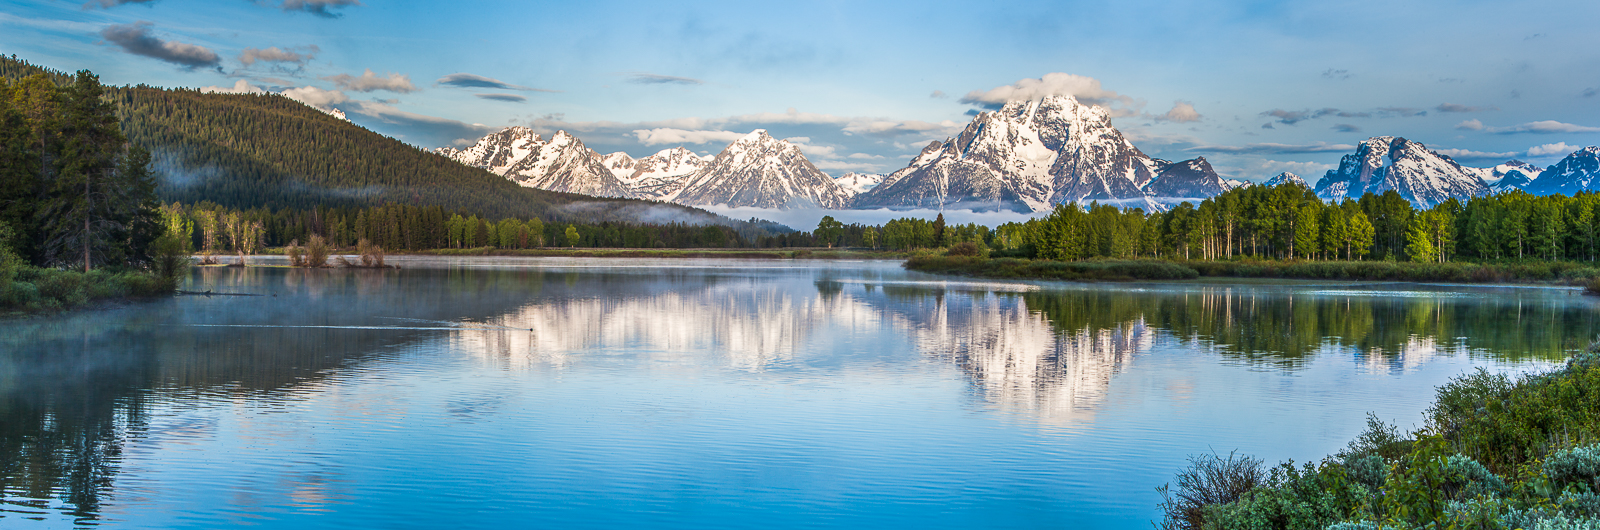 Spring at Oxbow Bend,Grand Teton National Park, Wyoming, panoramic,water,green,shoreline, photo